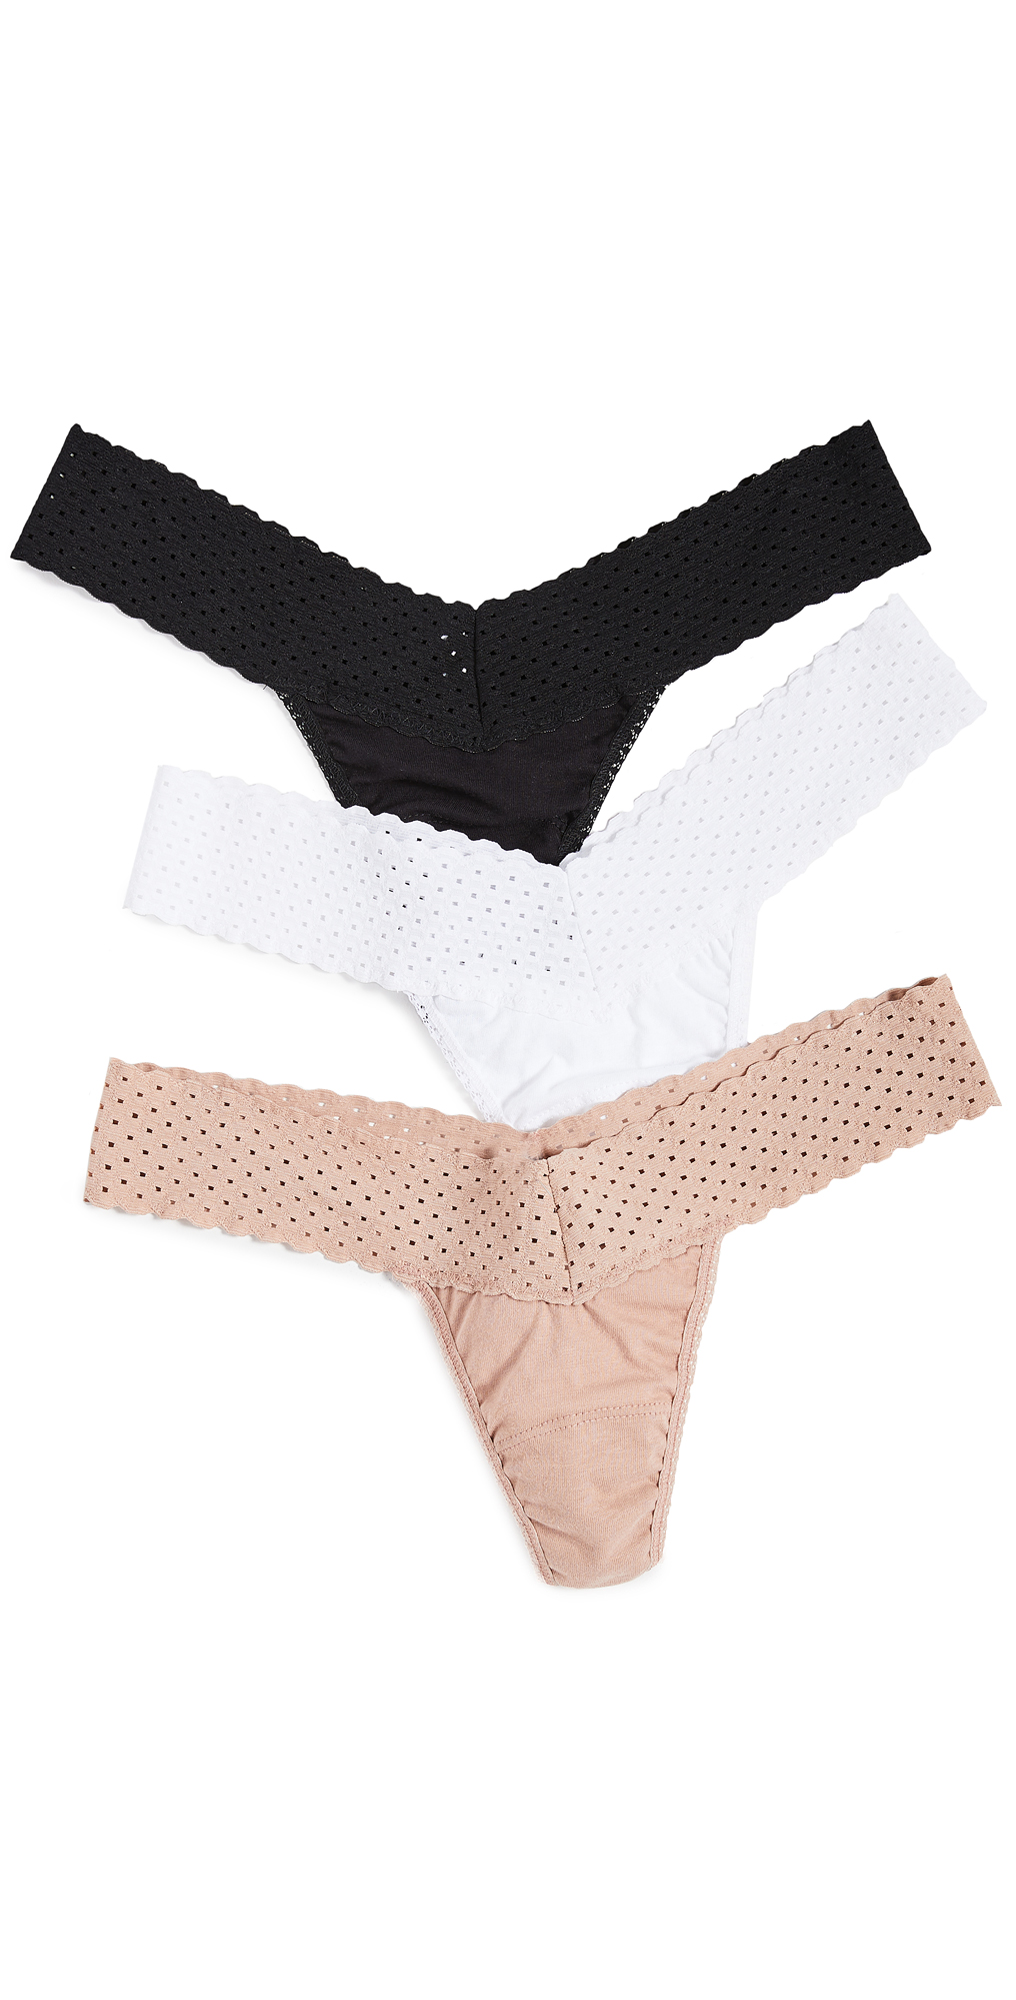 Hanky Panky Eco Cotton Low Rise Thong 3 Pack